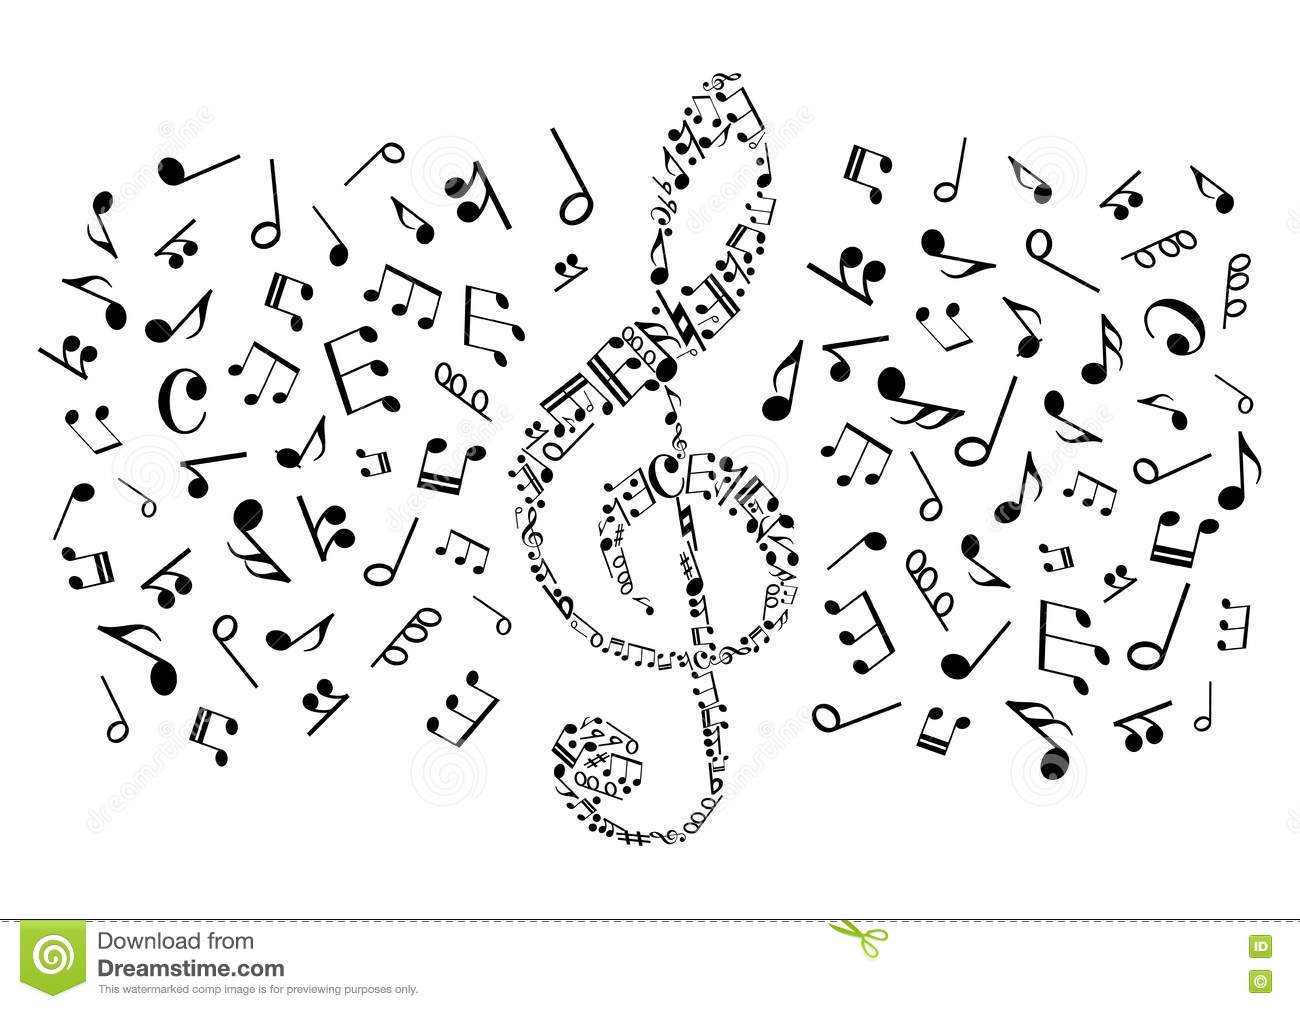 Decorative treble clef with musical notes symbols stock vector decorative treble clef with musical notes symbols biocorpaavc Gallery